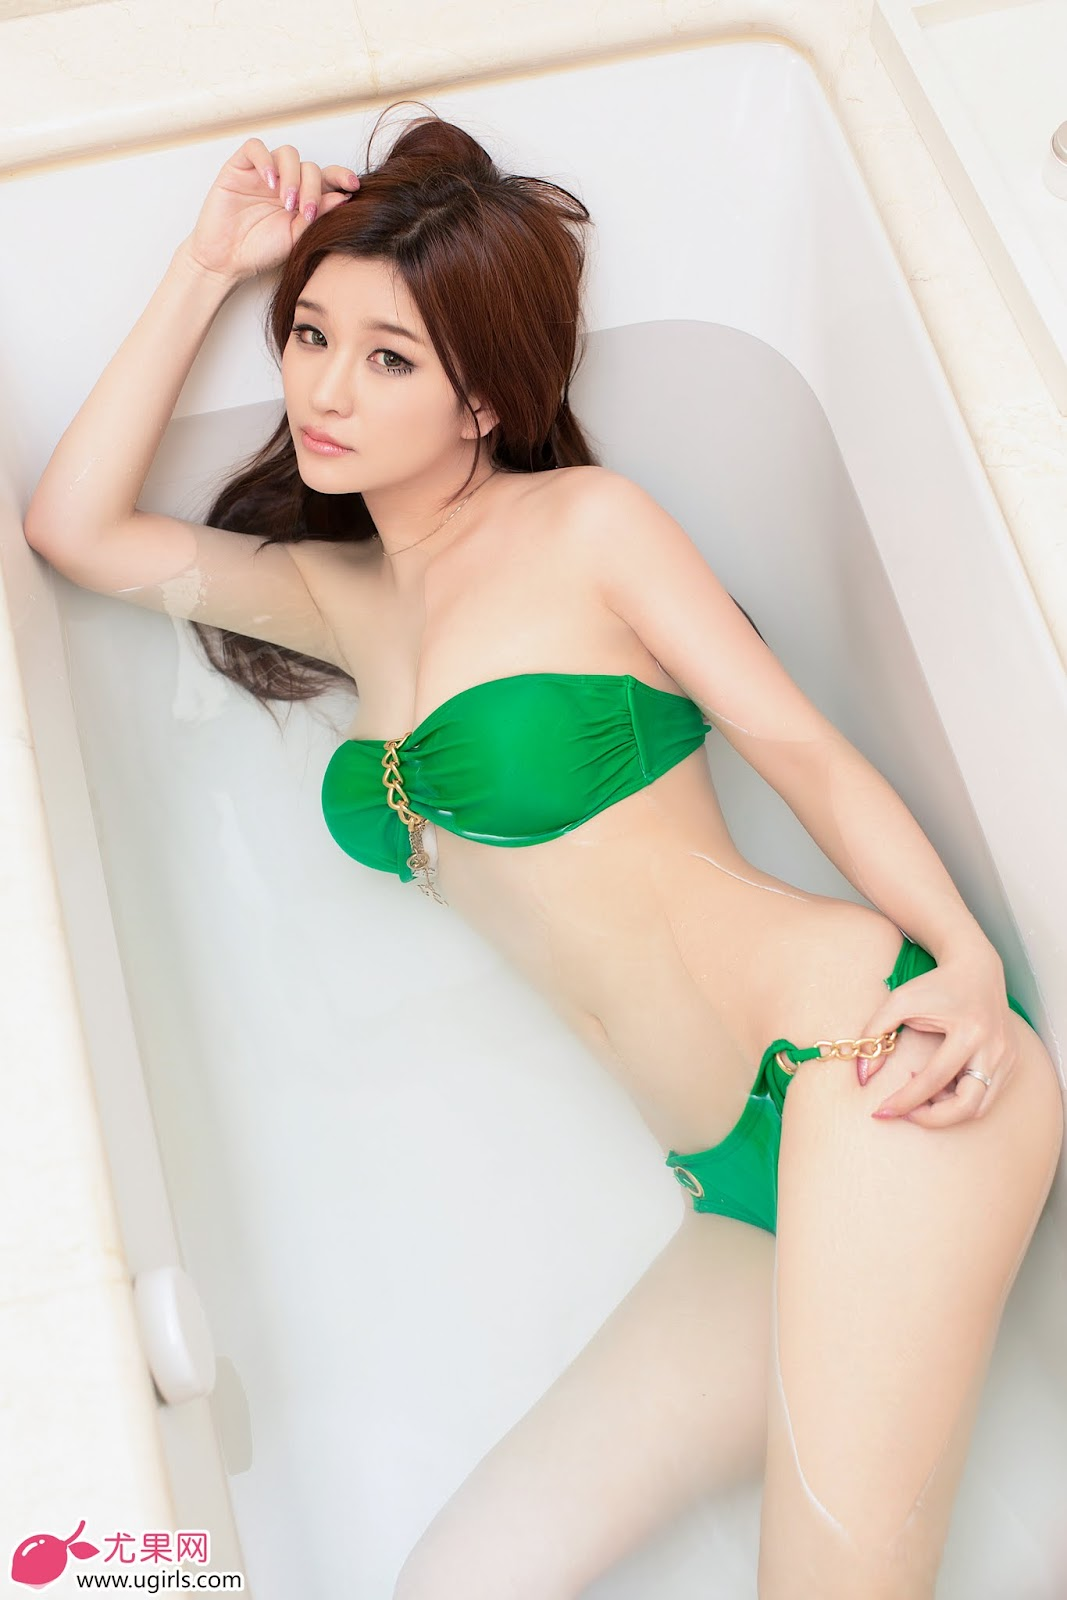 EZ0A0787 - Ugirls No.016 Model 纯小希 (Chun Xiao Xi)